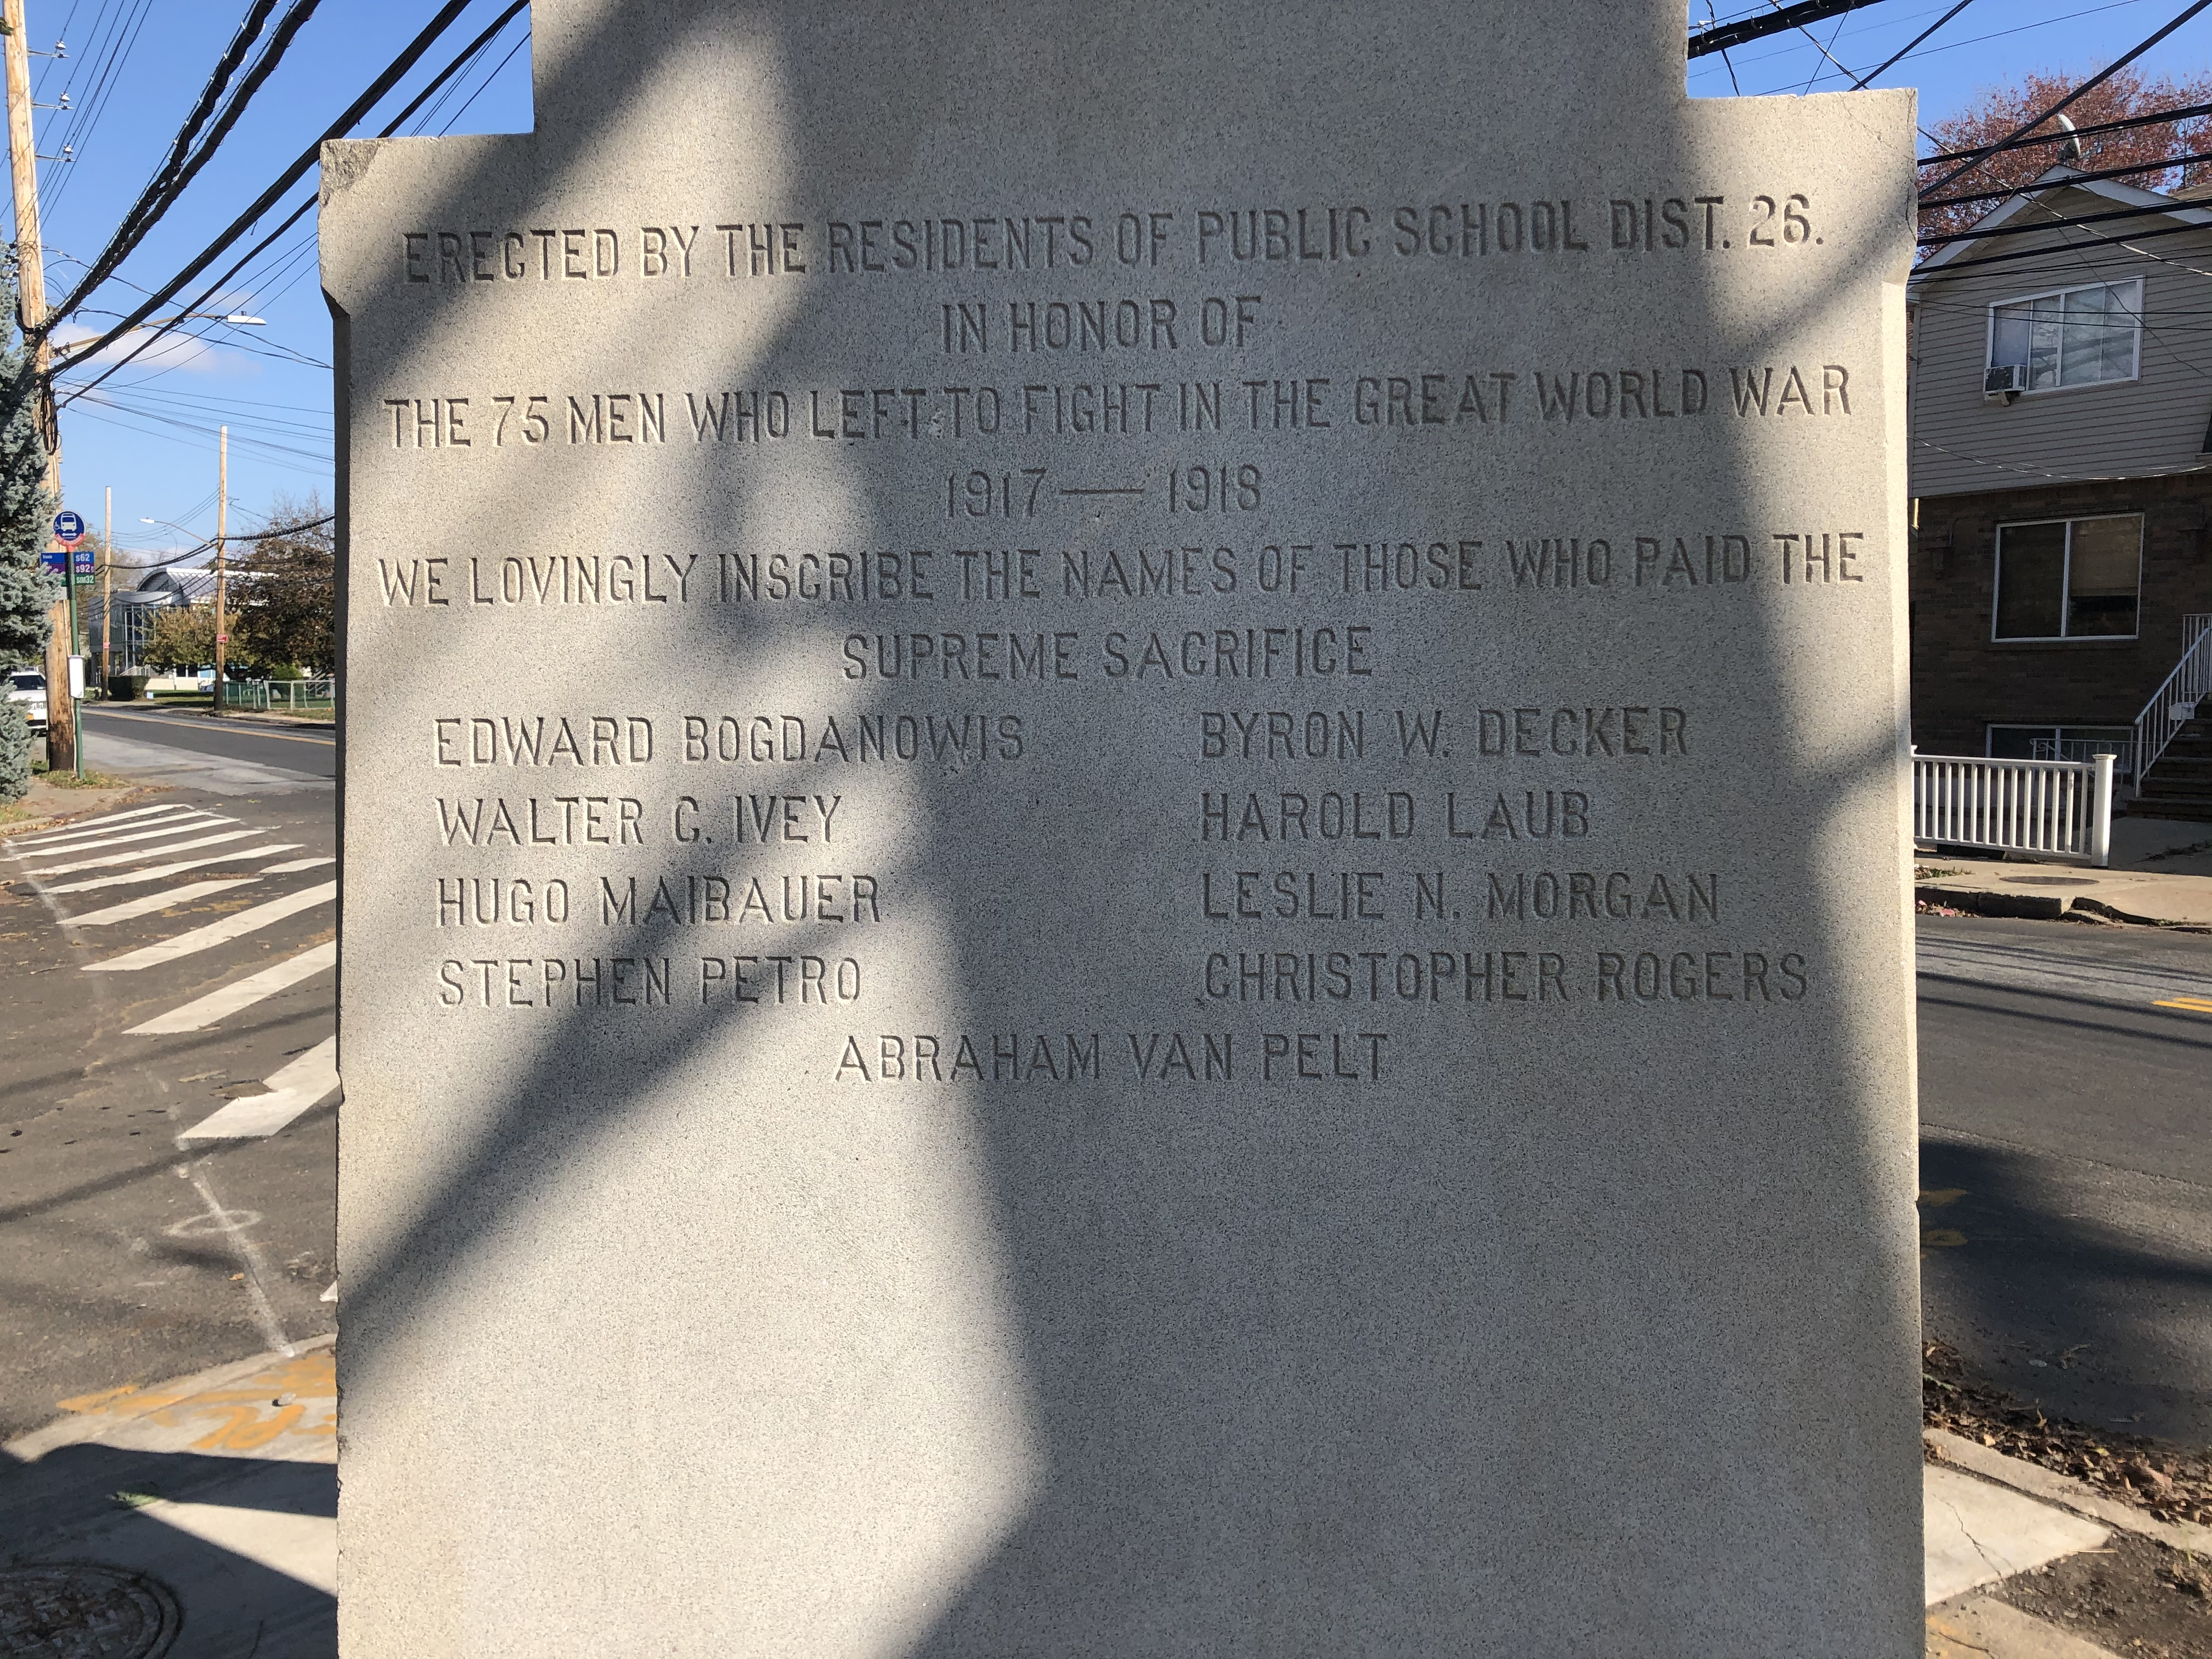 Description on the back of the memorial